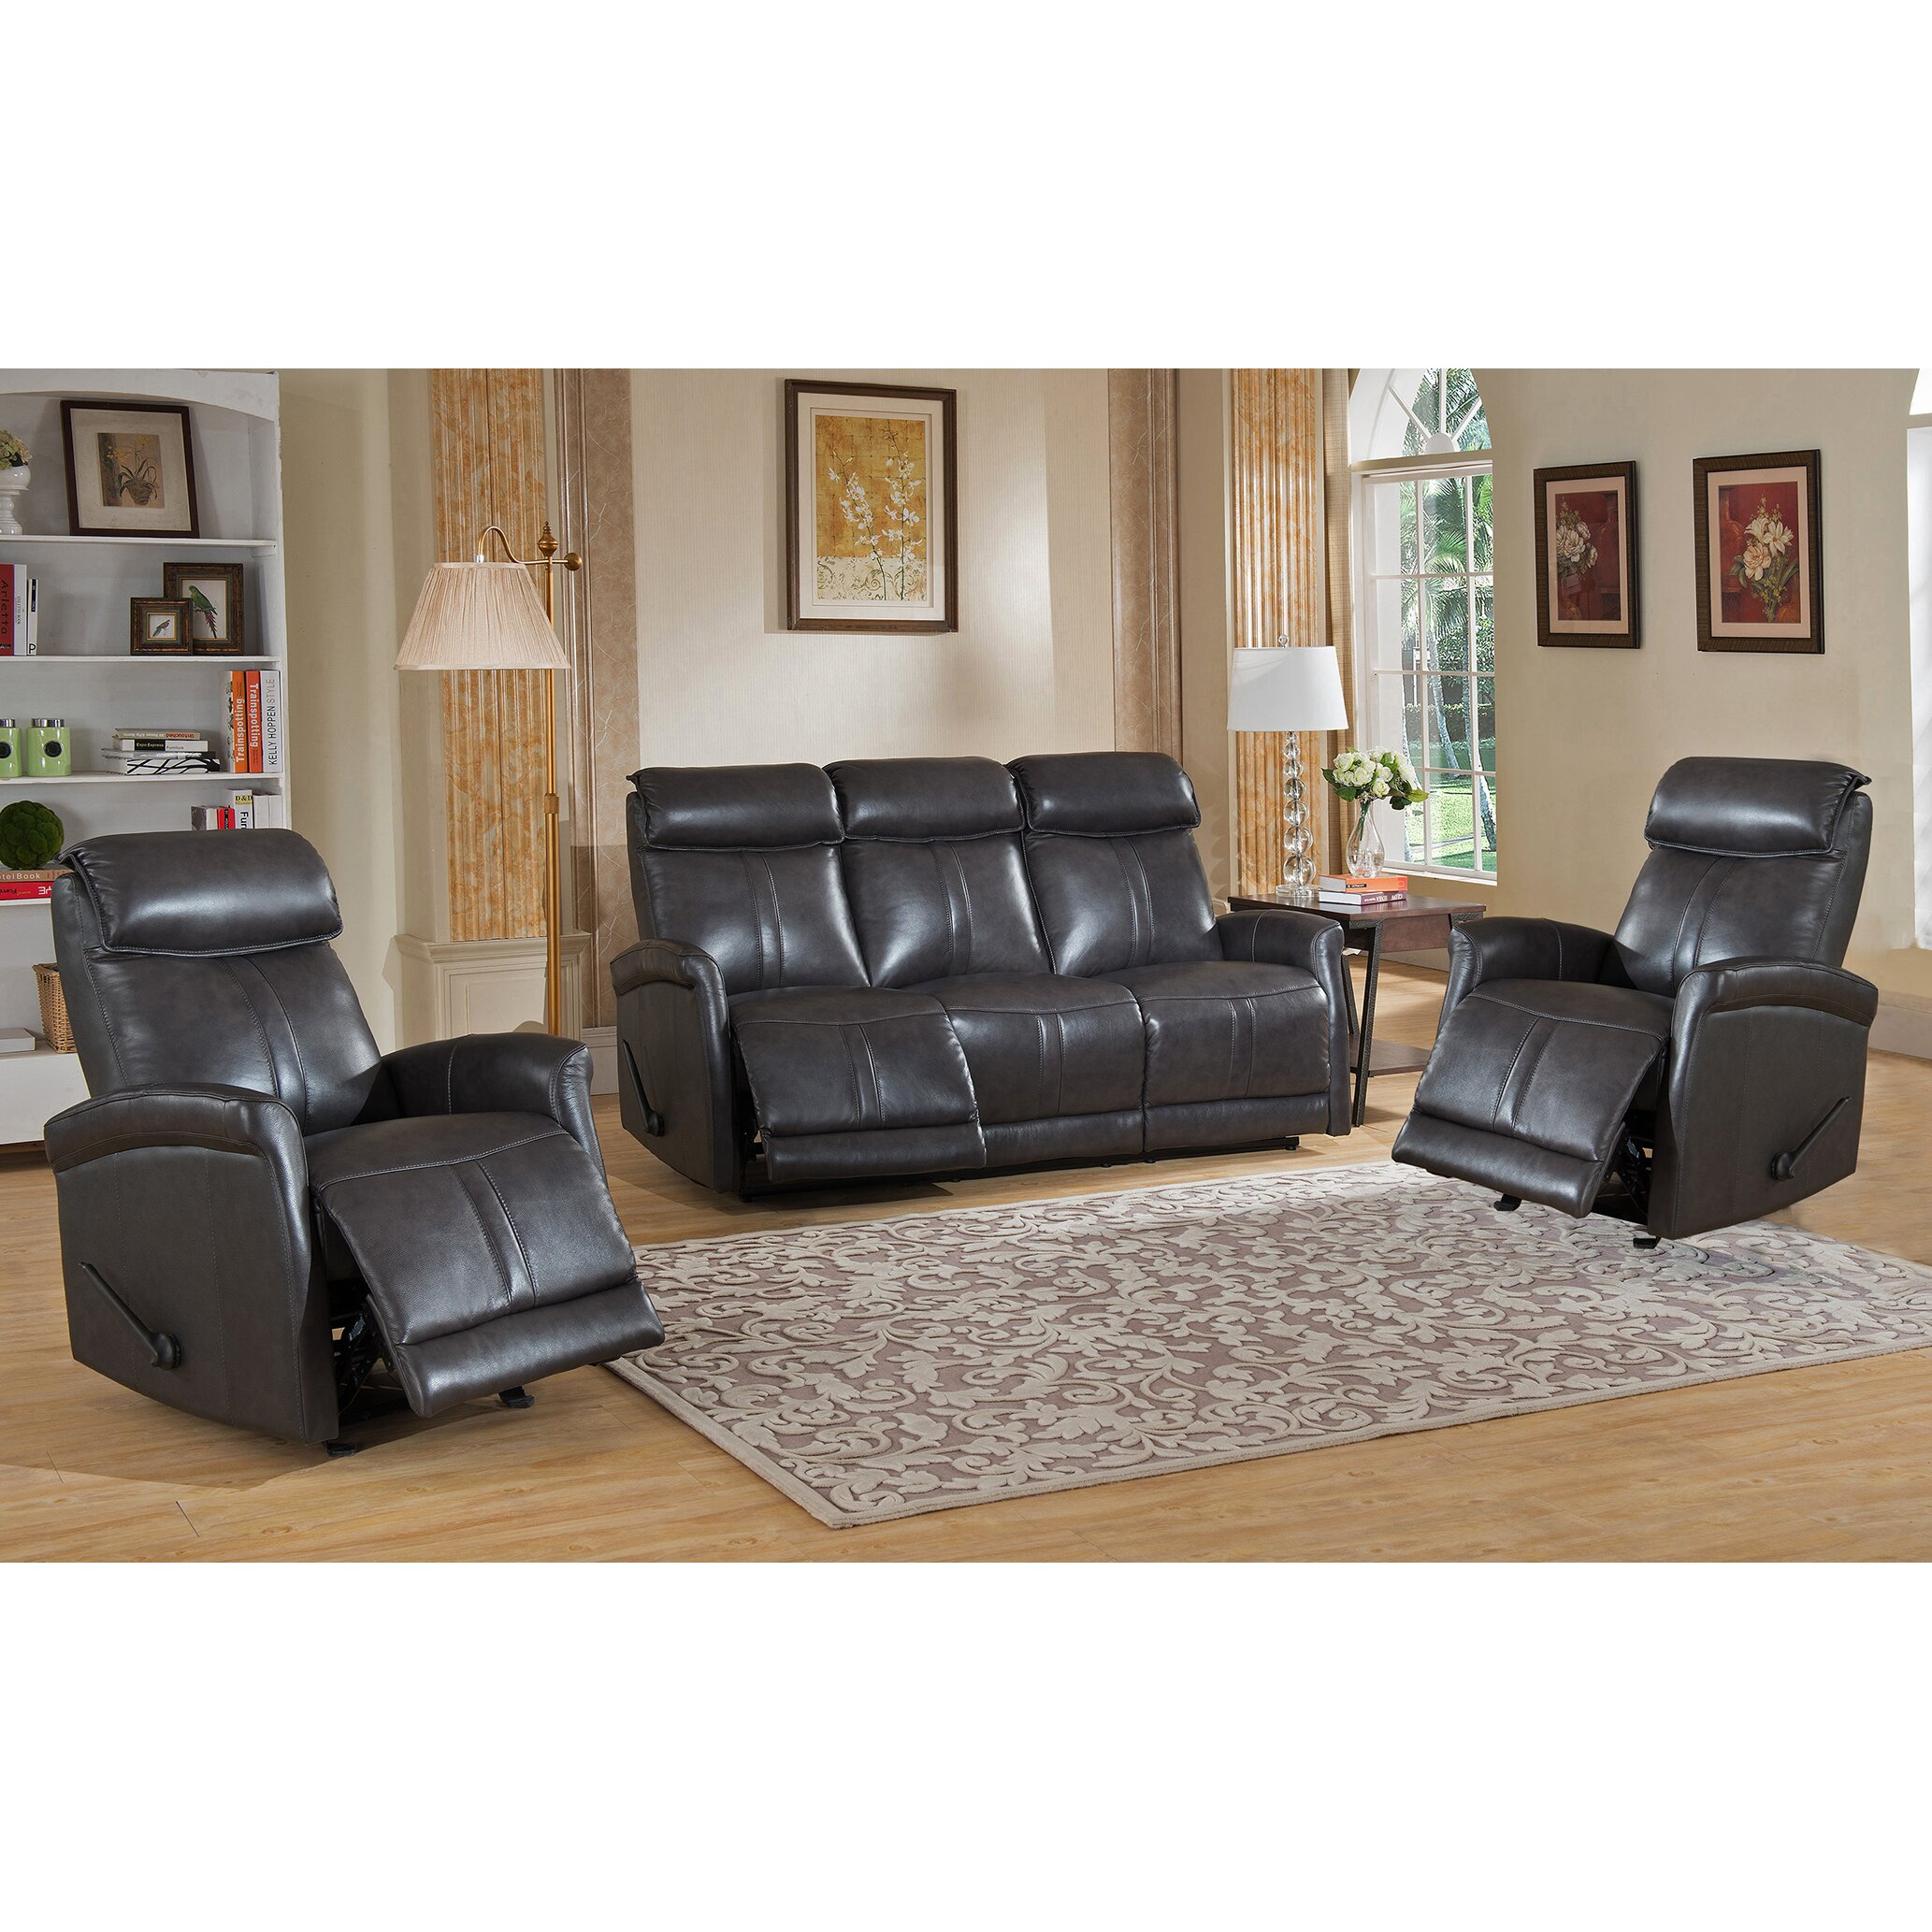 Three Piece Leather Living Room Set. Living Room Pendant. Grey Modern Living Room Ideas. Mustard And Grey Living Room. Storage Cabinets For Living Room. Silver Table Lamps Living Room. Rug Living Room Ideas. Classic Living Room Decor. Living Room Colour Ideas Pictures